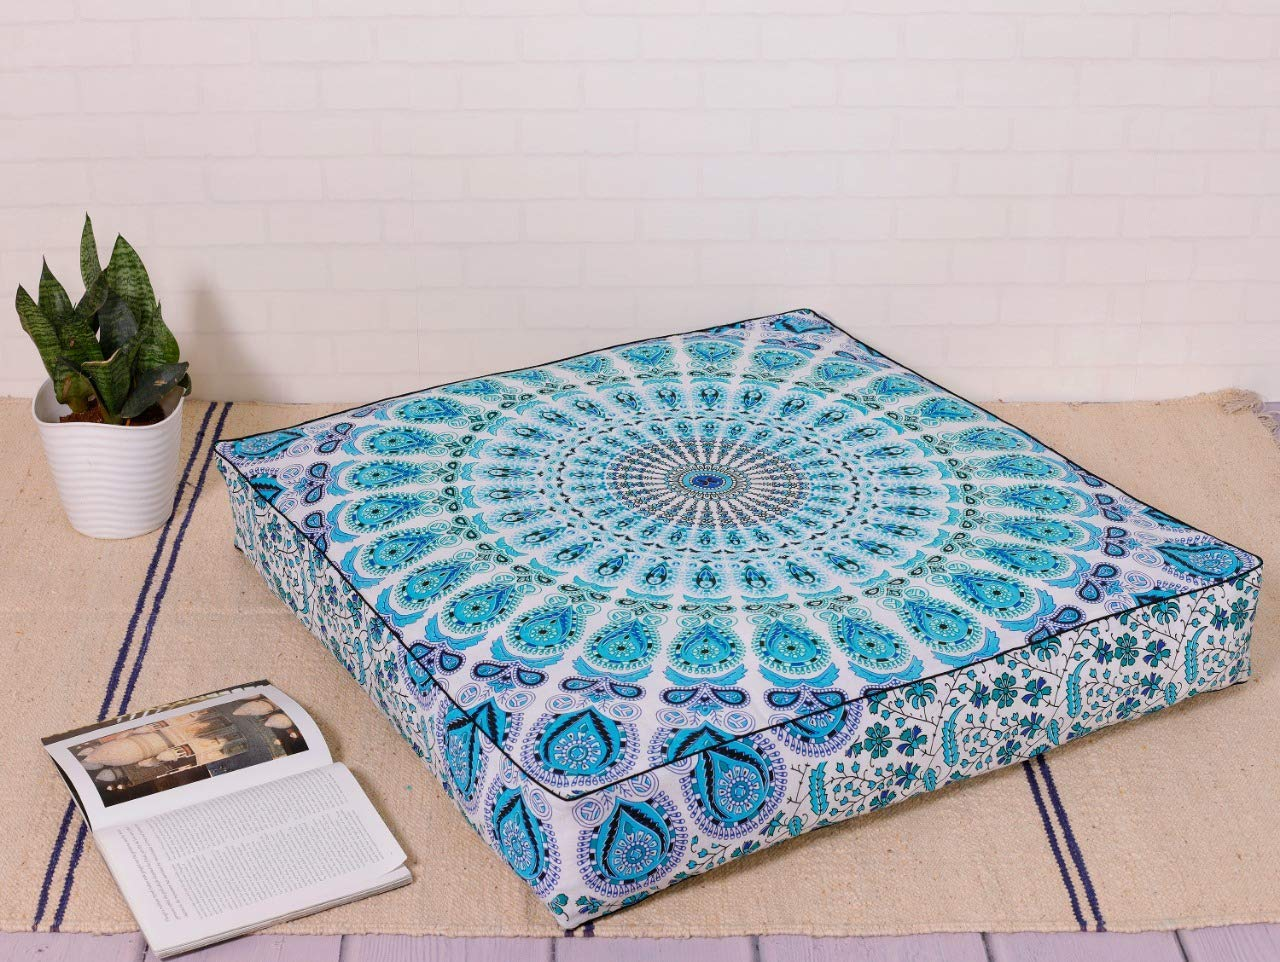 Indian Mandala Floor Pillow Cover Square Ottoman Pouf Cover Daybed Oversized Cotton Cushion Cover with Heavy Duty Zipper Seating Ottoman Poufs Dog-Pets Bed 35'' by Hemsi-77